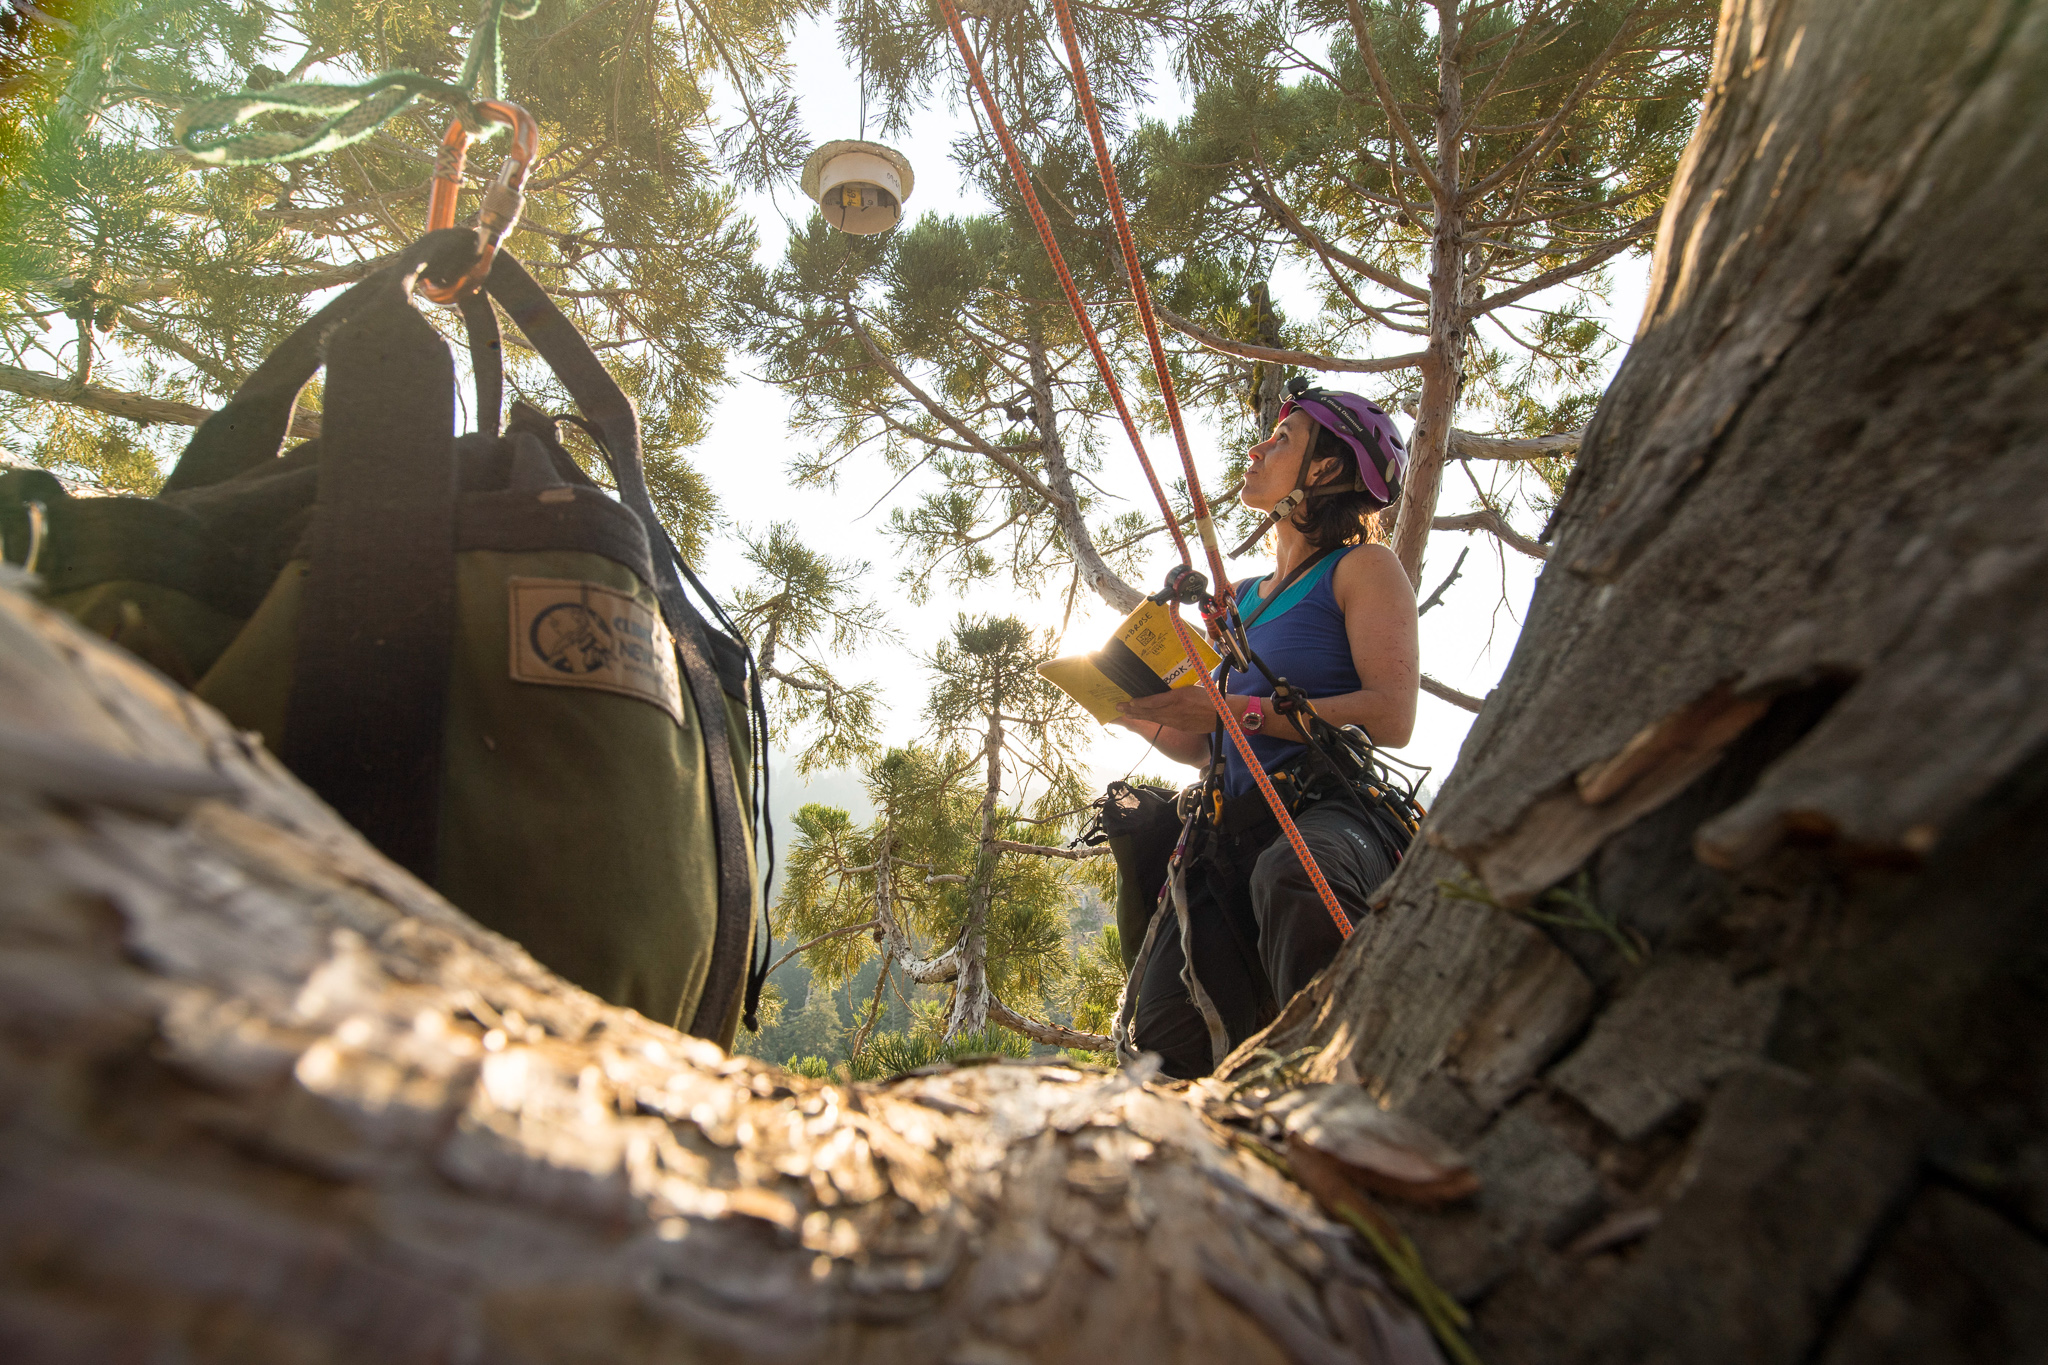 Wendy Baxter, a scientist at UC Berkley, records data while taking foliage samples from the top of a giant sequoia tree in Sequoia National Park